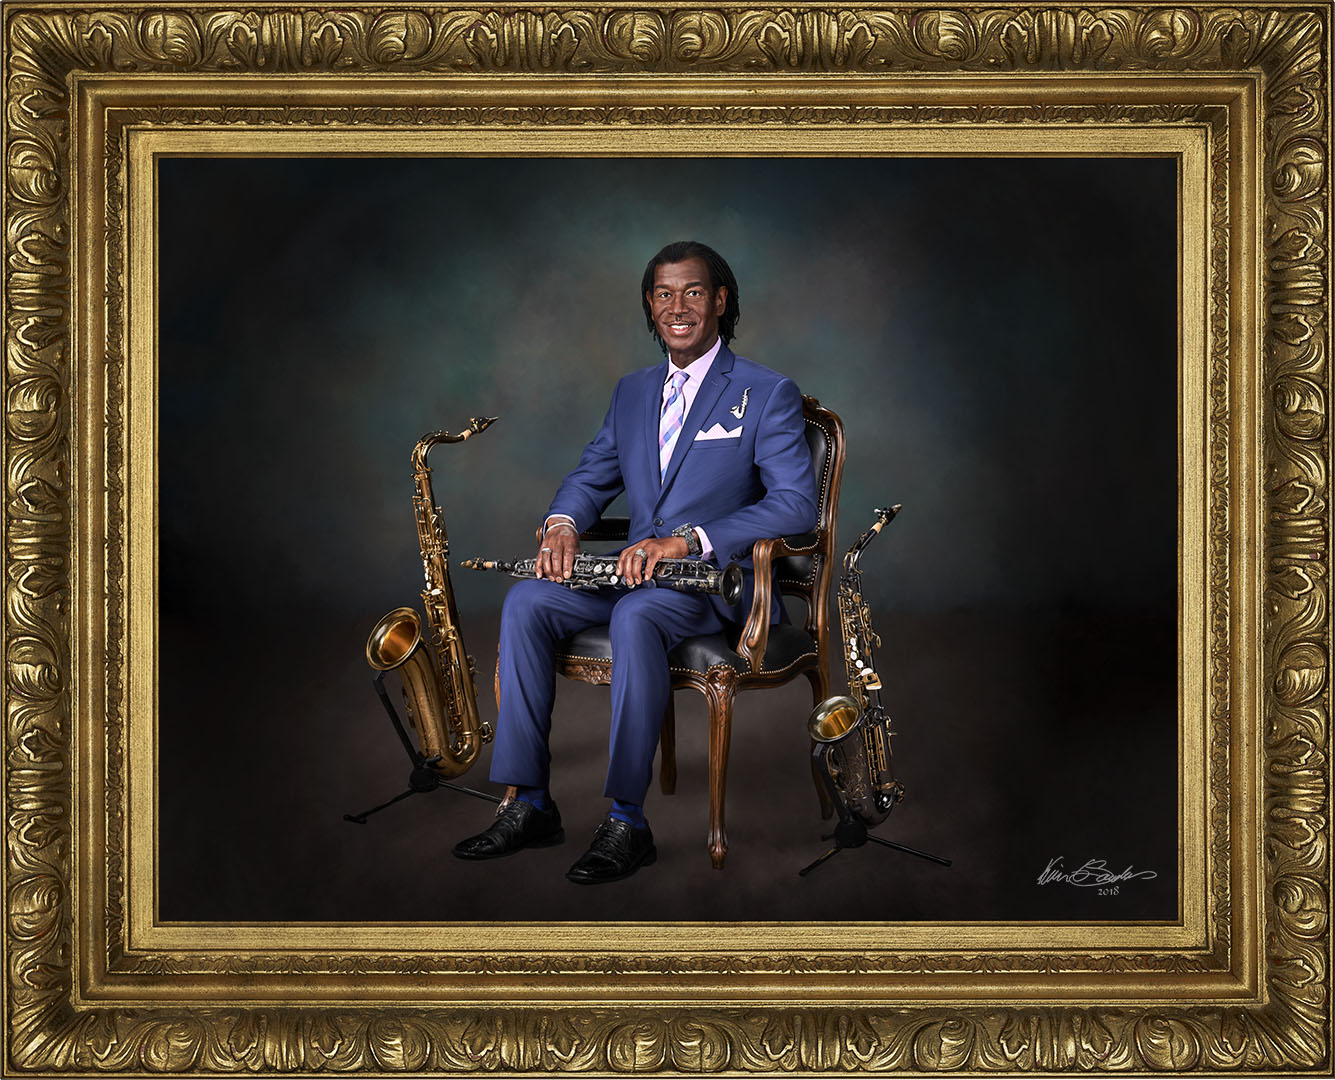 Christopher with Saxes Signature Portrai